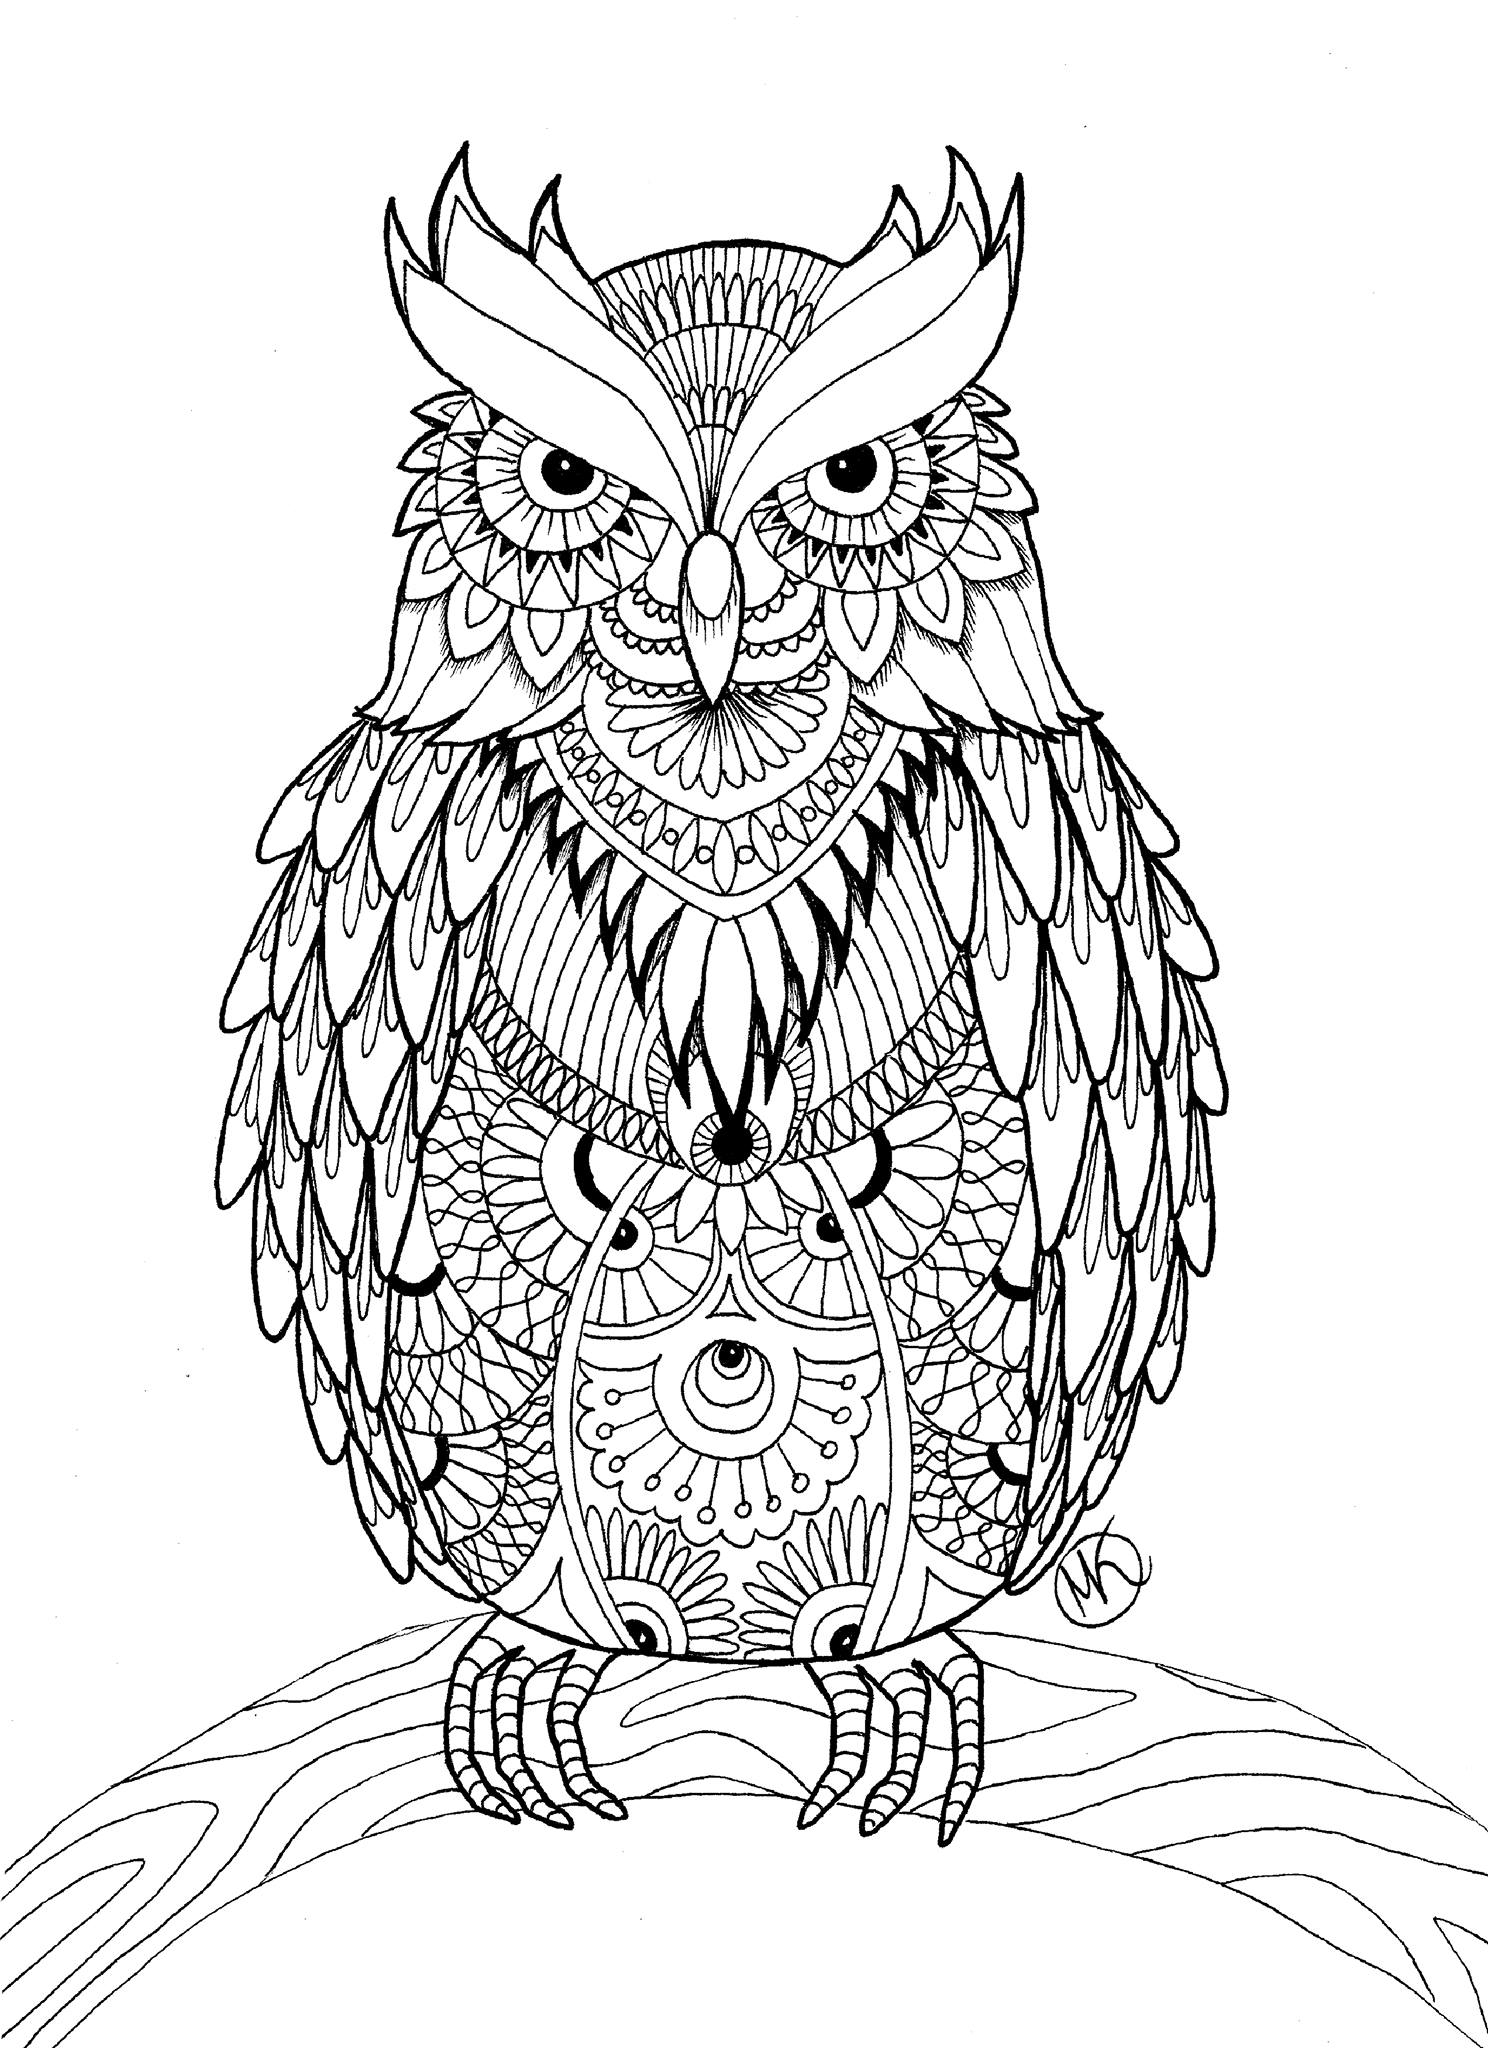 Owl coloring pages for adults free detailed owl coloring for Coloring pages to print for adults